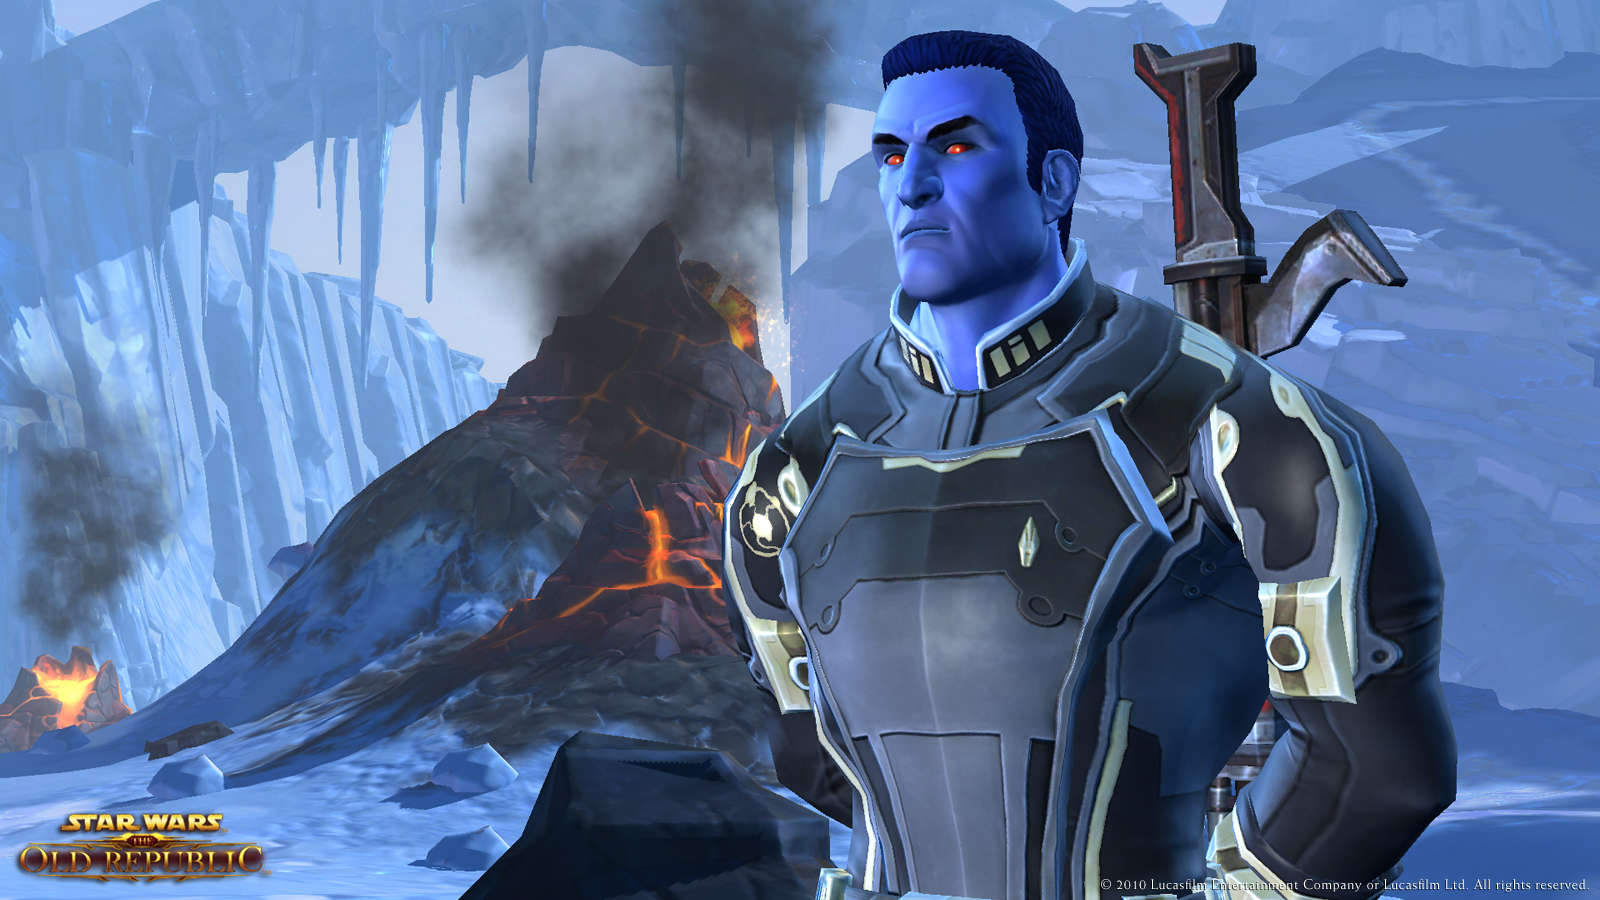 Swtor Announced All Races Gaming Face